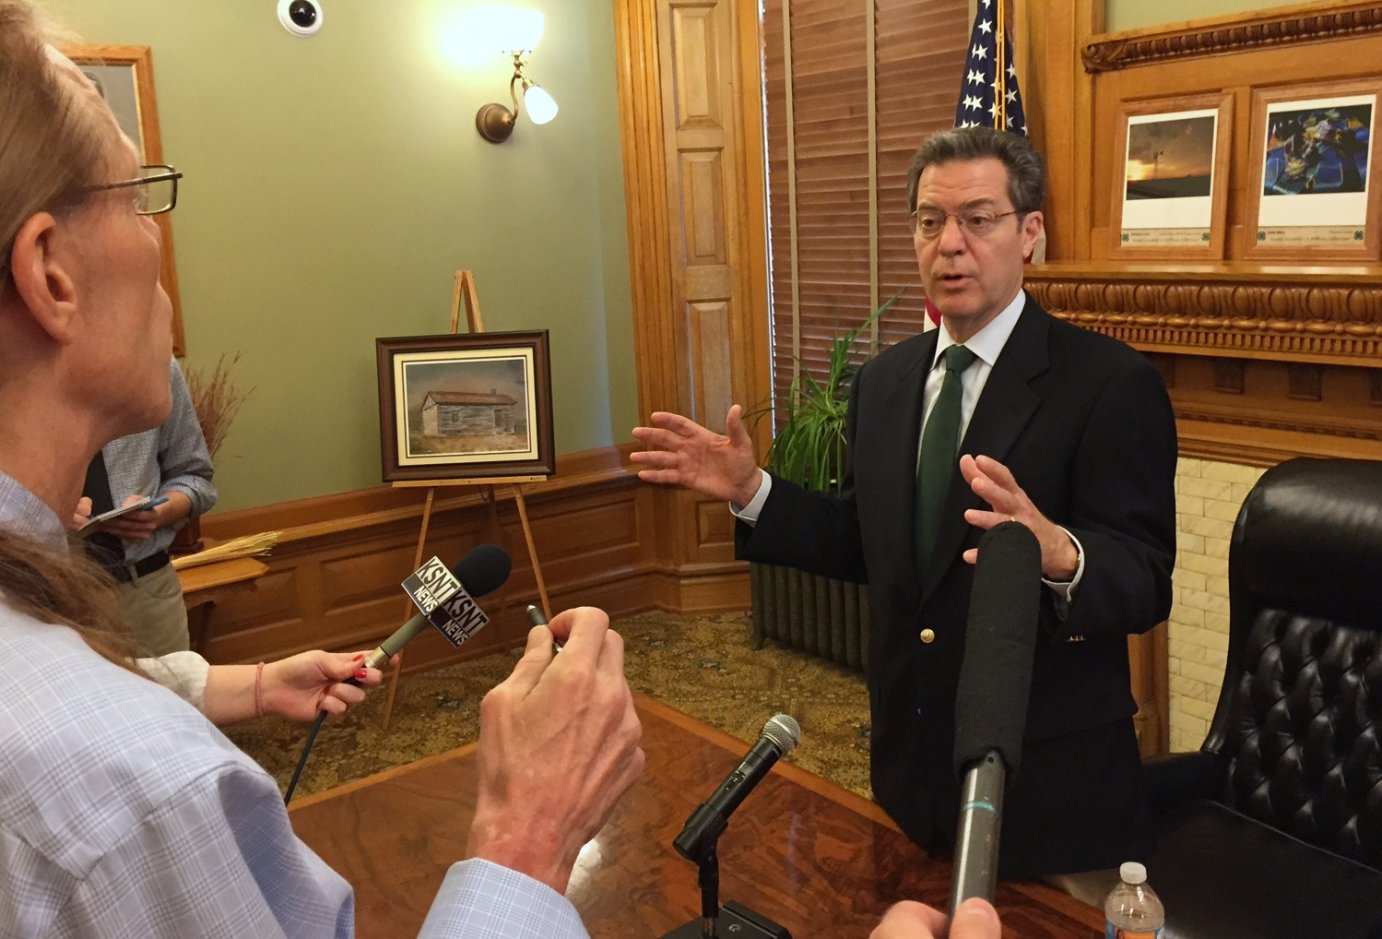 Governor Brownback speaking to reporters last month. (Photo by Stephen Koranda)